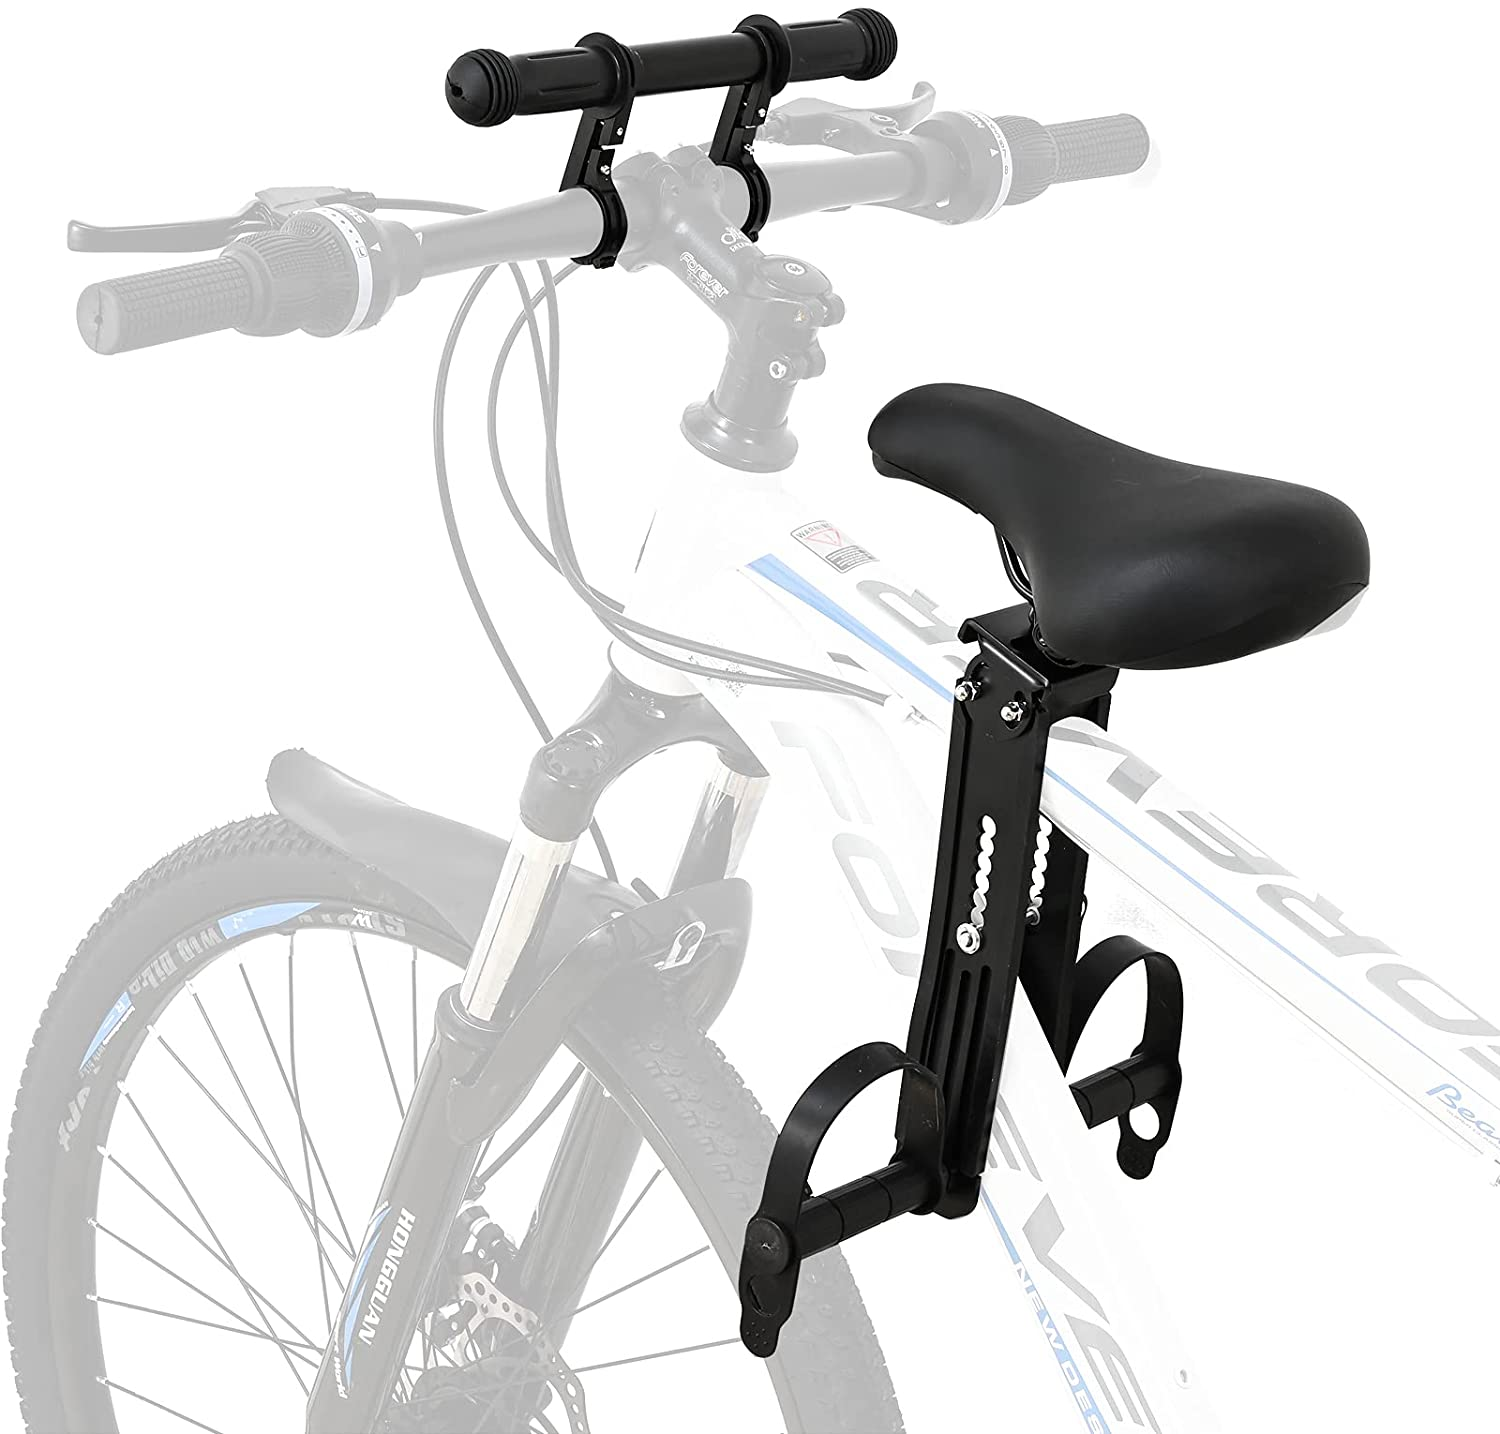 Kids Bike Seat with Handlebar Attachment, Detachable Front Mounted Child Bicycle Seats with Foot Pedals for Children 2~5 Years, Compatible with All Adult Mountain Bikes